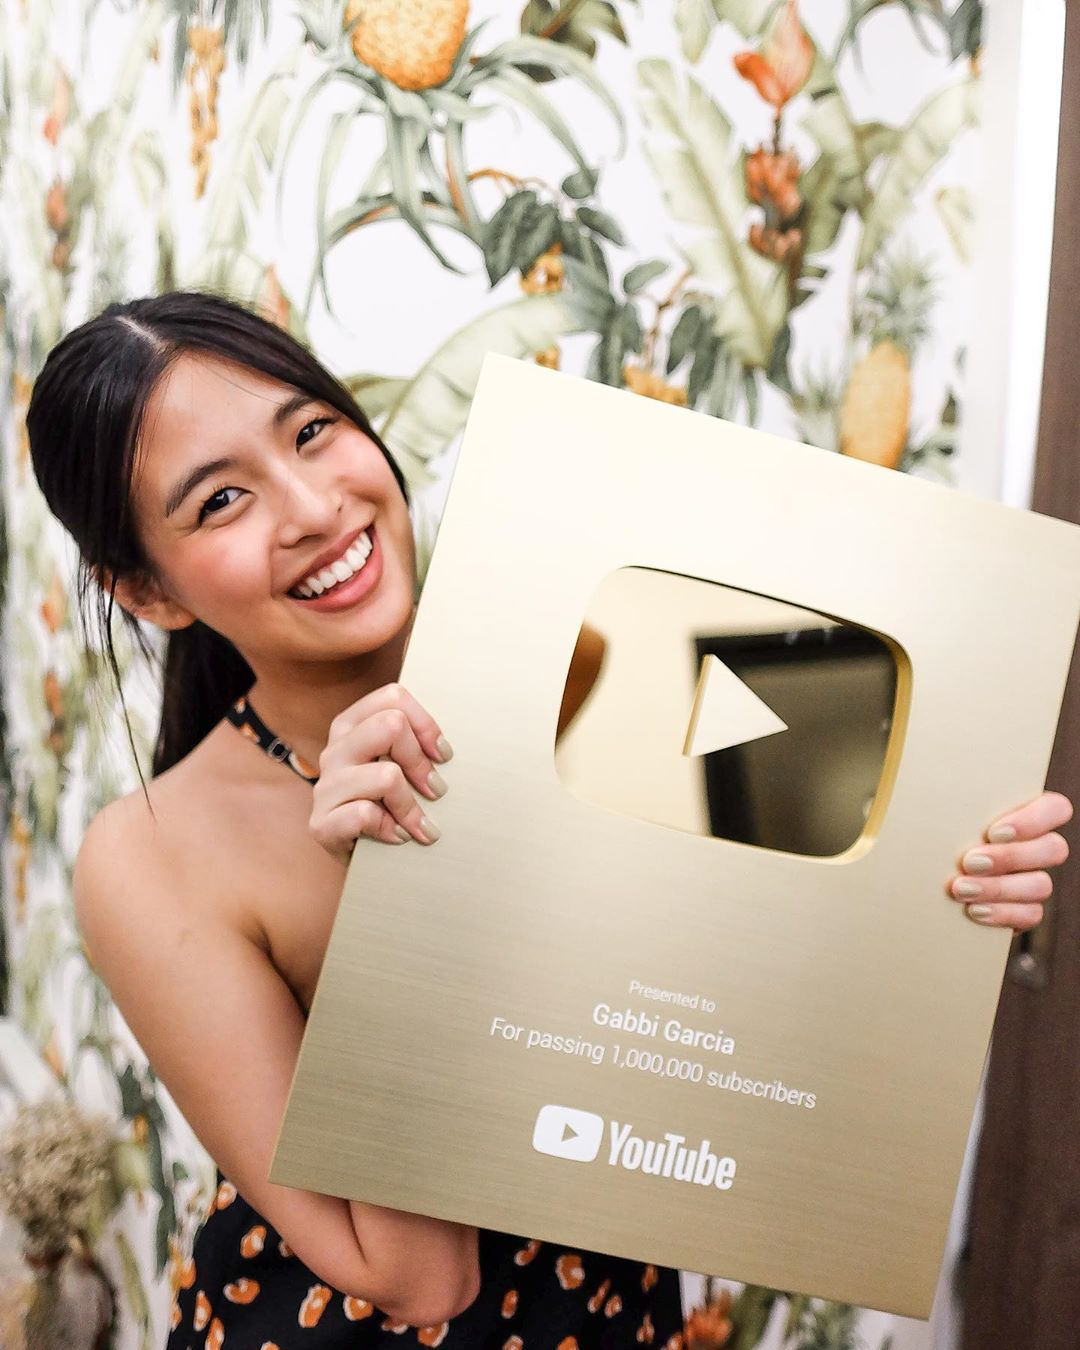 Gabbi Garcia YouTube Gold Play Button